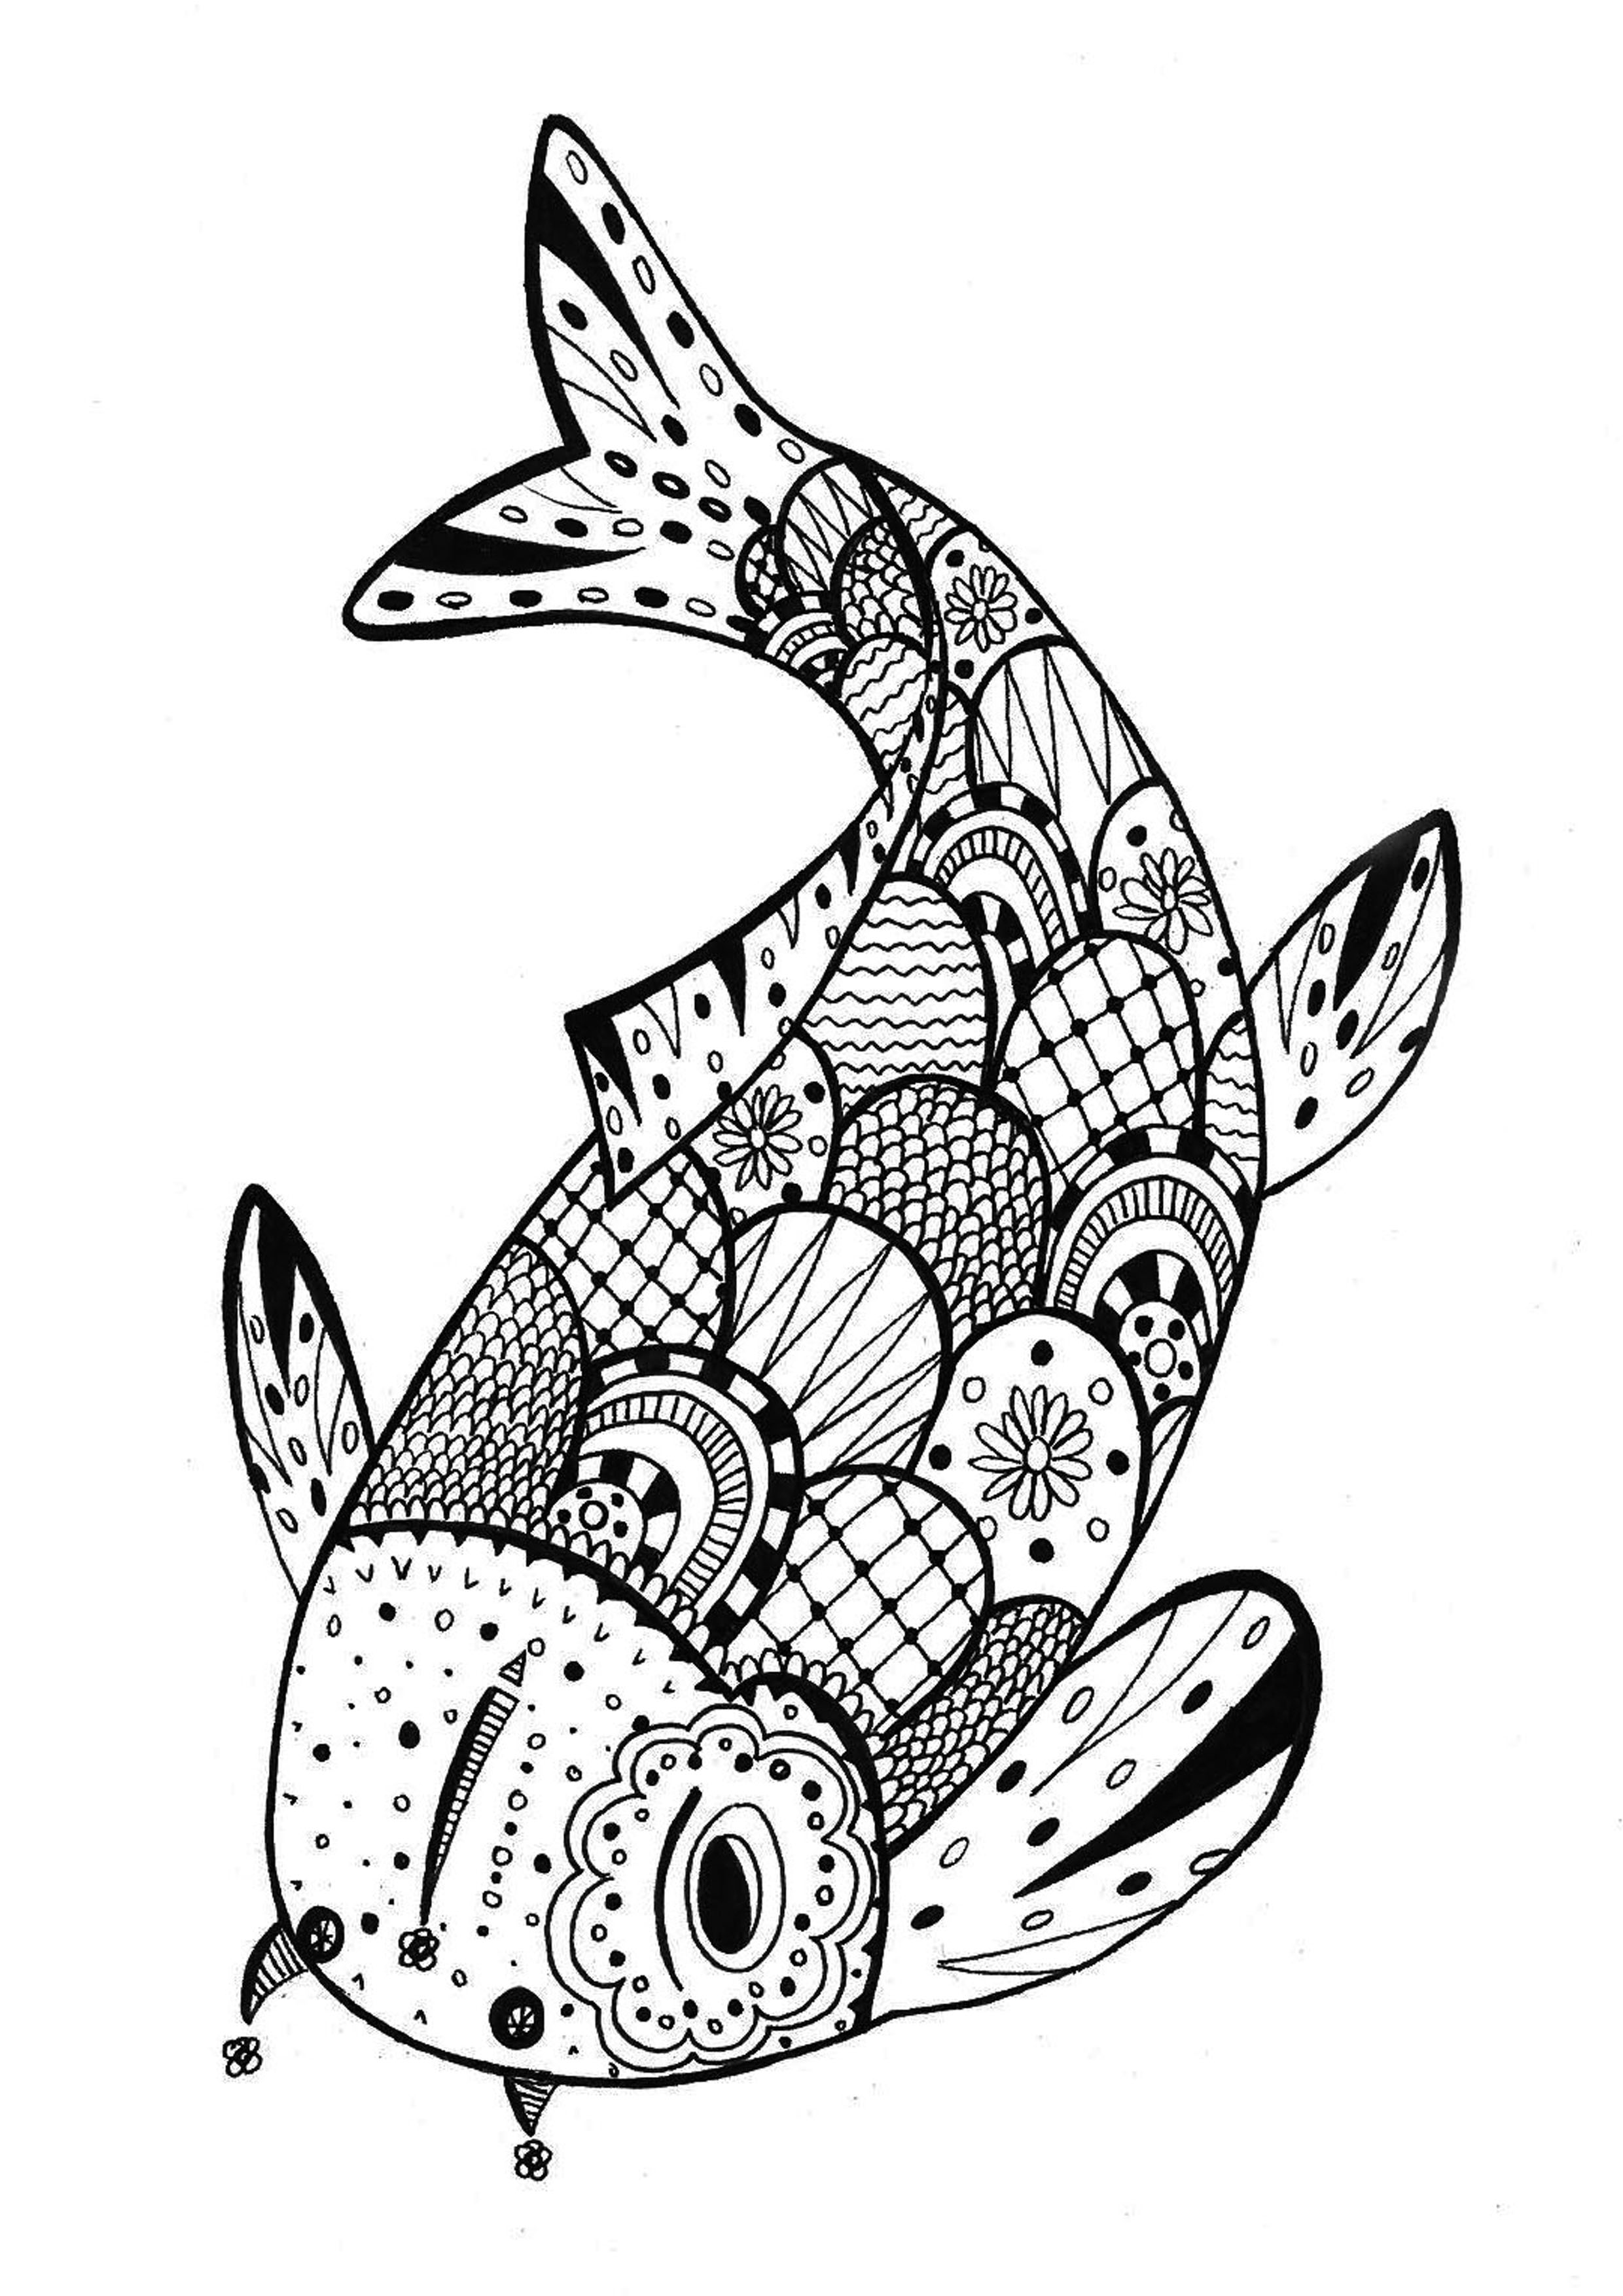 zentangle coloring pages free printable 9 best images of simple zentangle printable bookmarks to printable zentangle pages coloring free